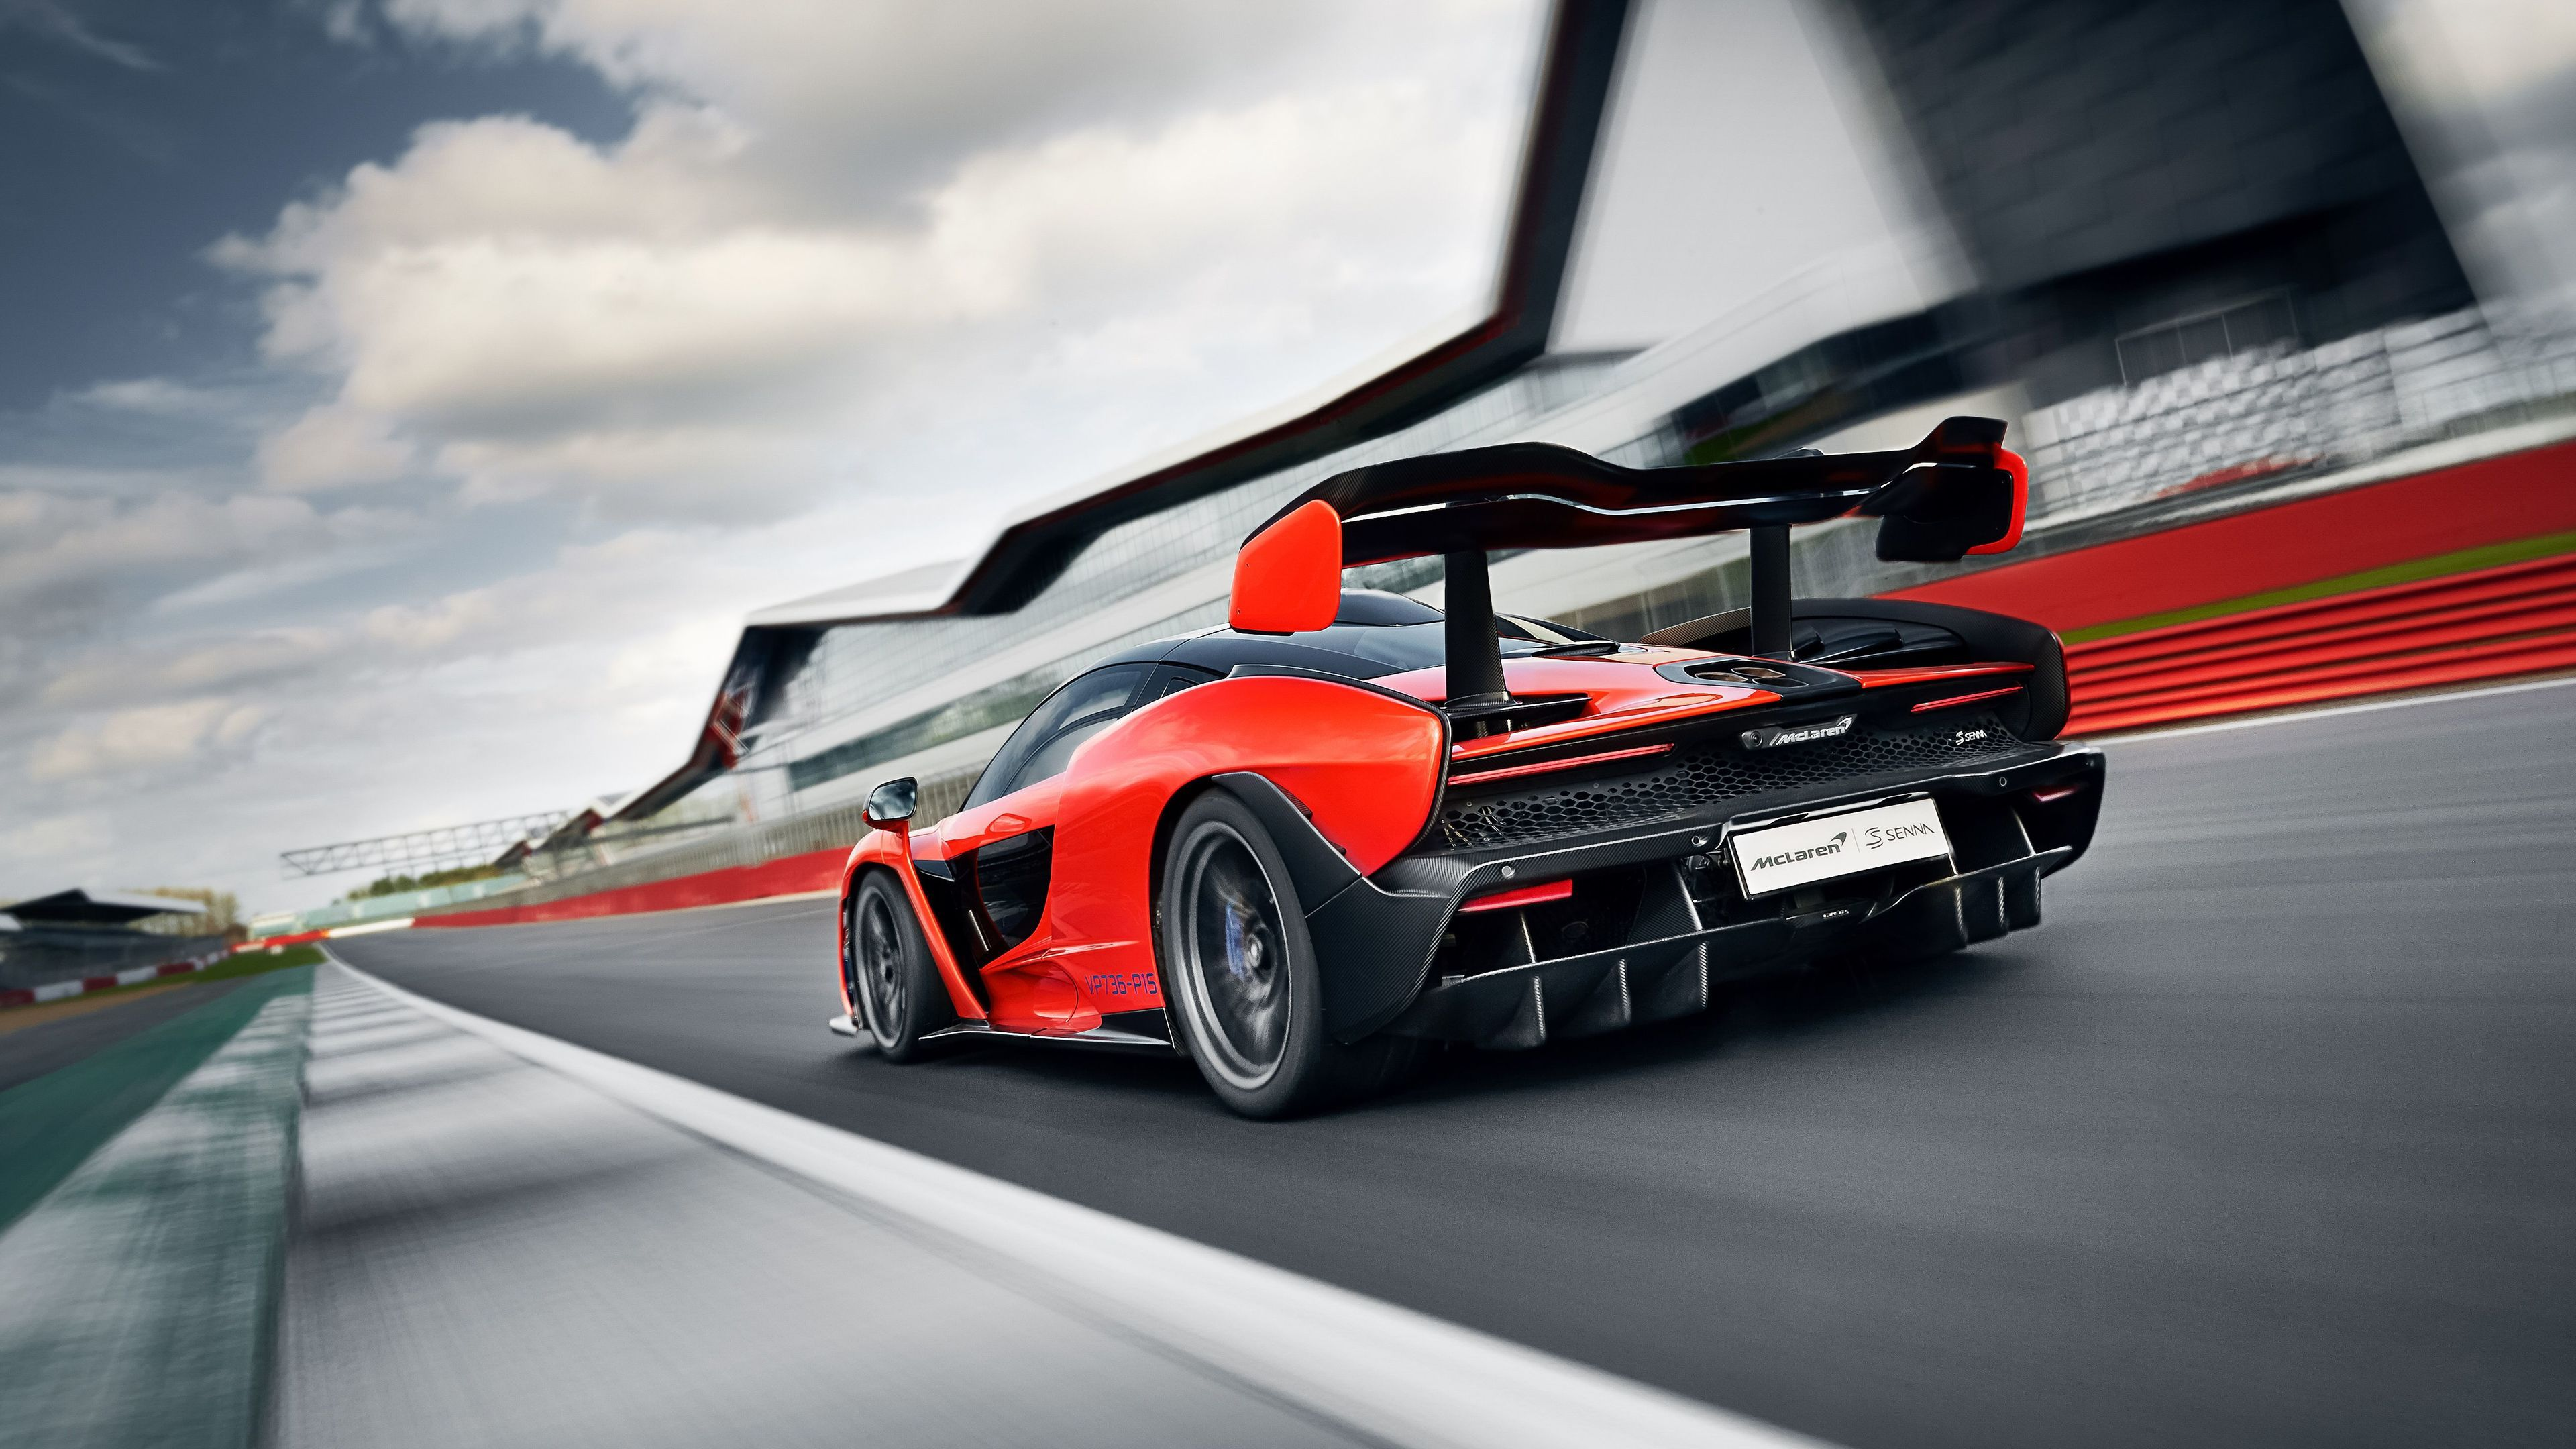 Mclaren Senna Rear 4k Mclaren Wallpapers Mclaren Senna Wallpapers Hd Wallpapers Cars Iphone Wallpaper Inspirational Car Wallpapers Iphone Wallpaper Hipster